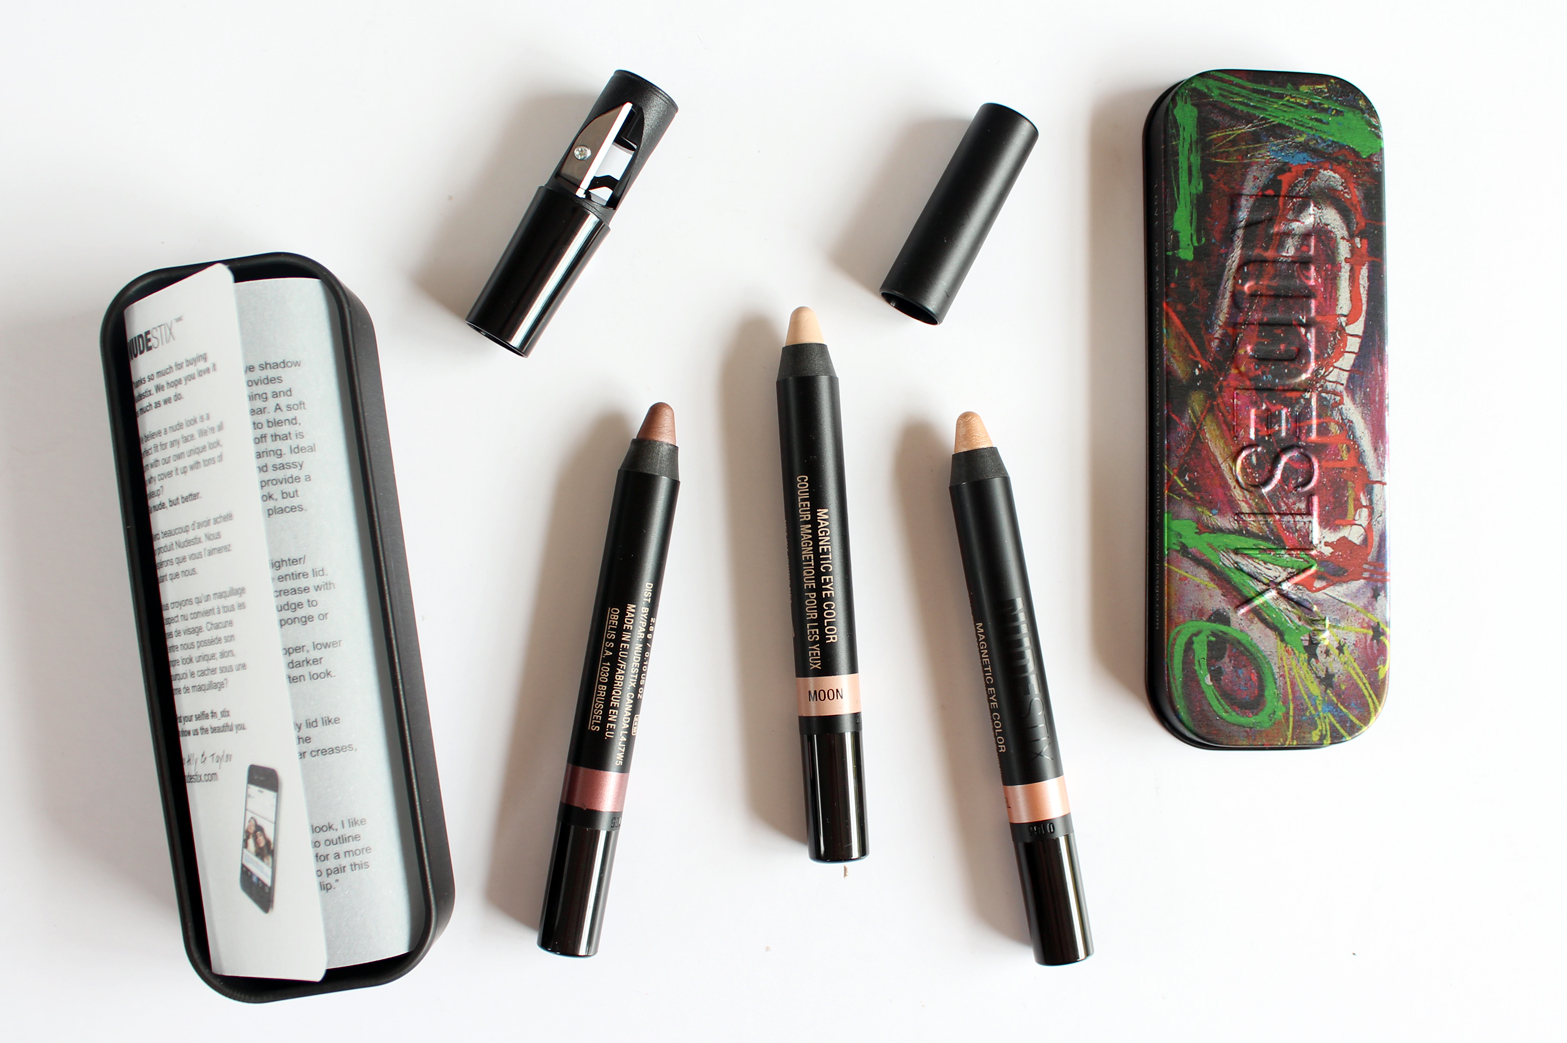 SEPHORA NEW ZEALAND | Haul - Reviews + Swatches - Nudestix Magnetic Eye Color Pencil - Angel, Spirit, Moon - Limited Edition Tin - CassandraMyee